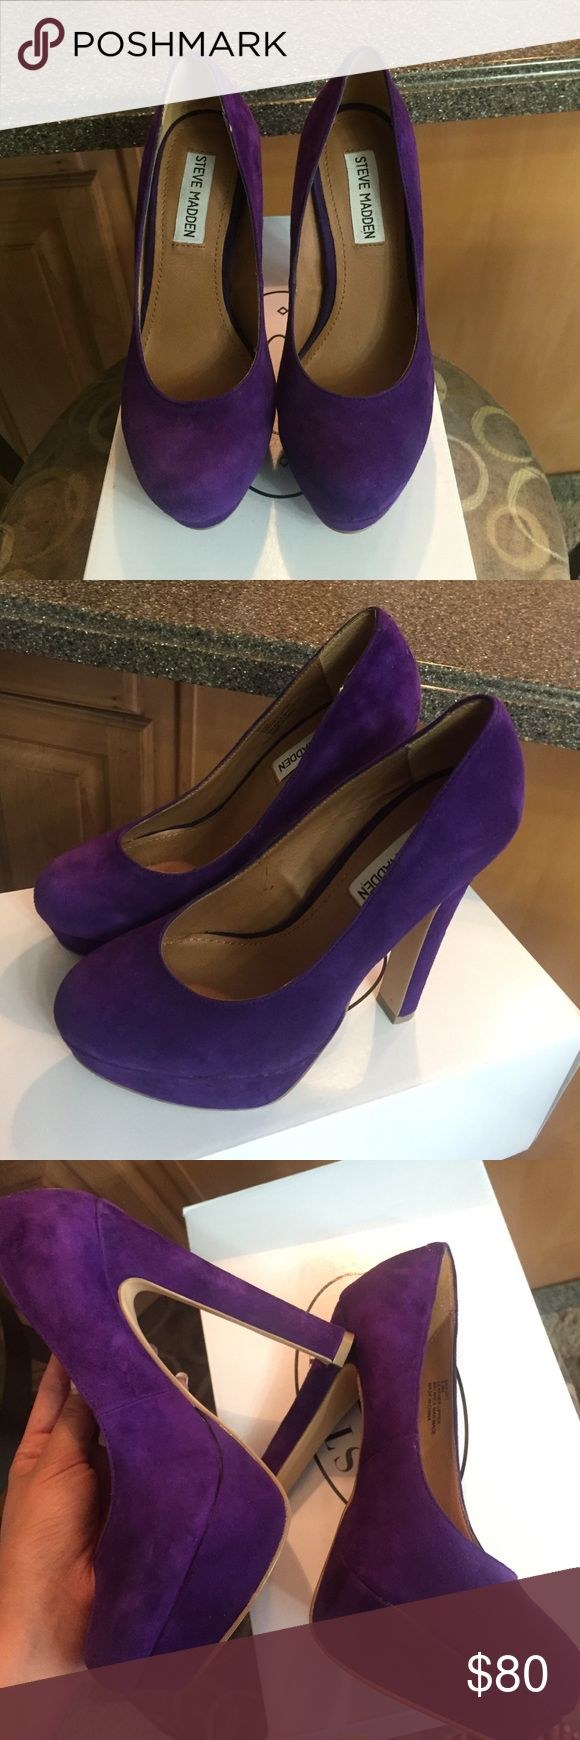 Steve Madden purple platform pumps sale Worn once for a trip. In great condition with little/no signs of wear except for the bottom. Comfortable platform pumps by Steve Madden. Comes with box Steve Madden Shoes Platforms